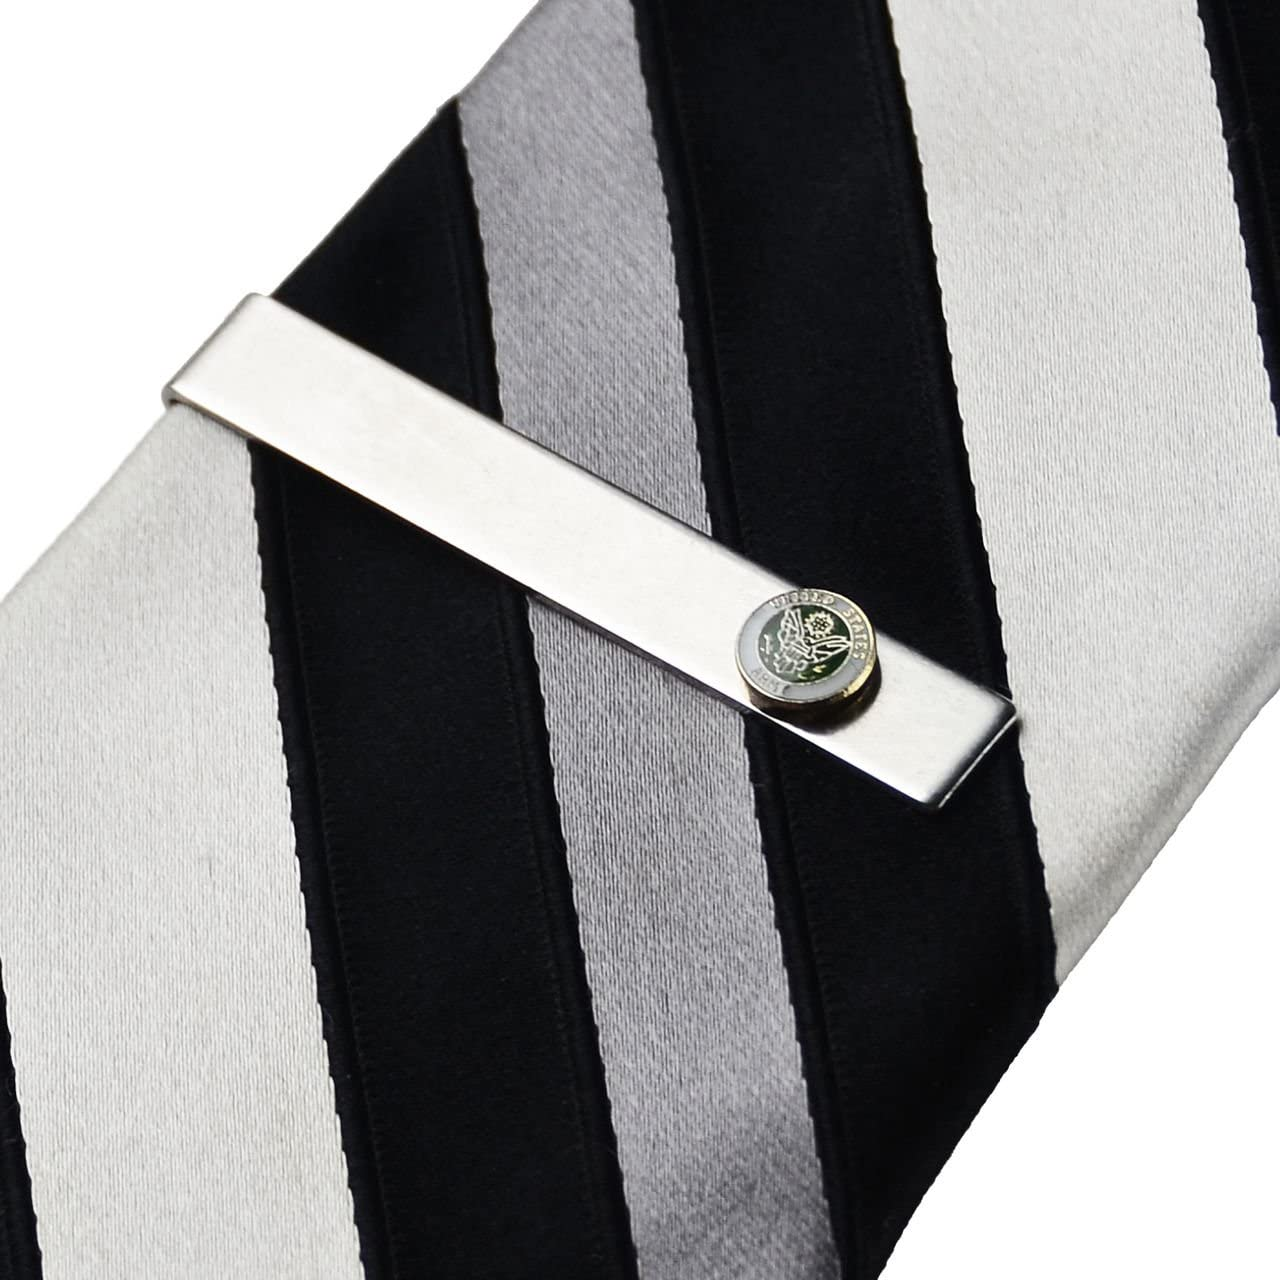 Quality Handcrafts Guaranteed Army Tie Clip